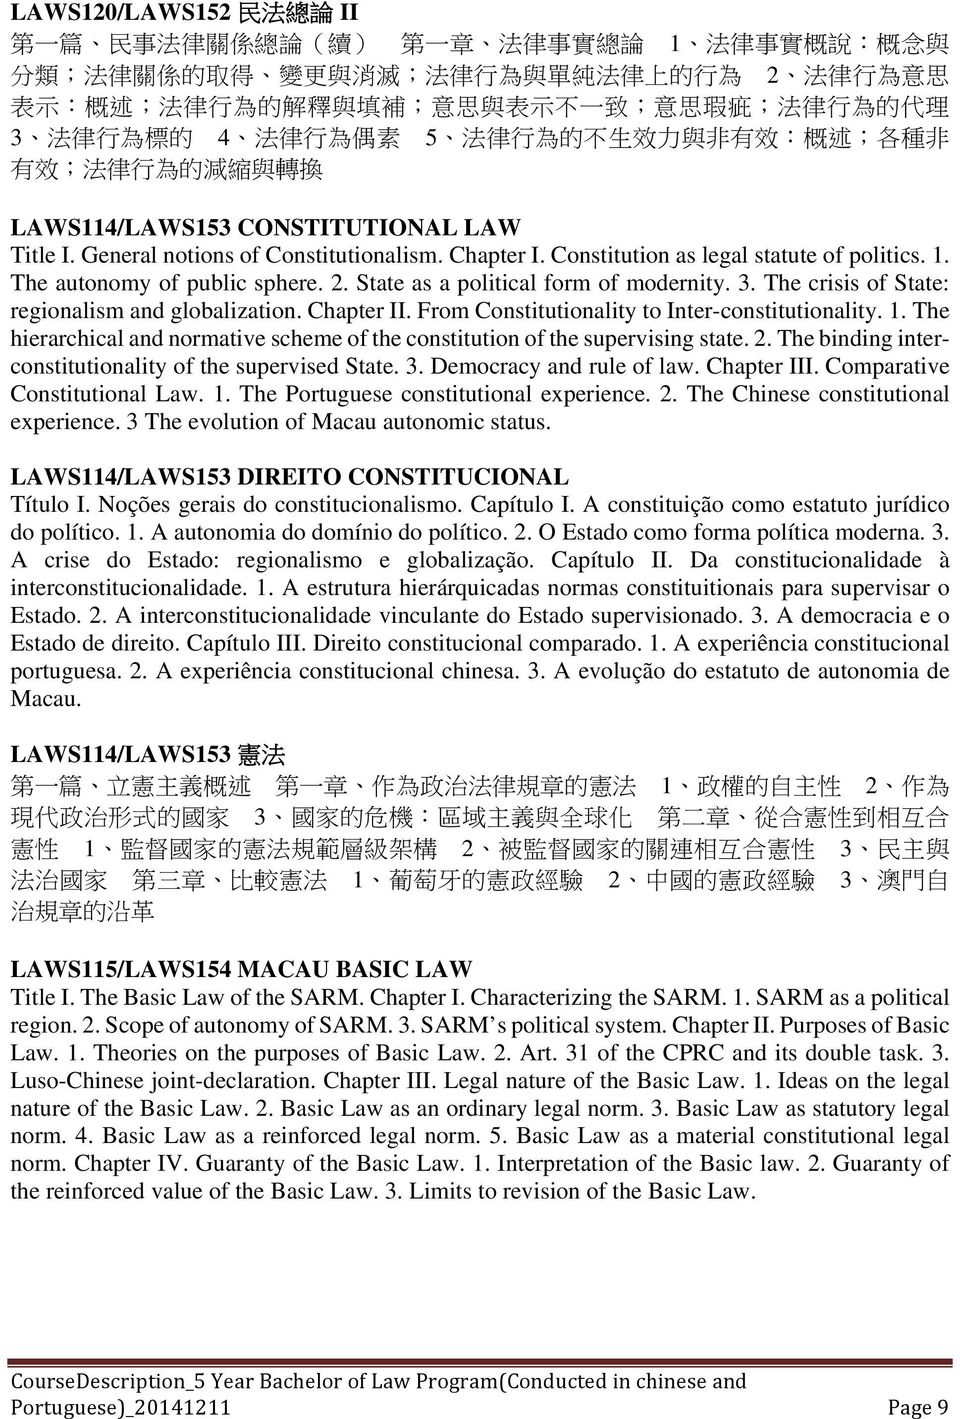 . 概 述 ; 各 種 非 有 效 ; 法 律 行 為 的 減 縮 與 轉 換 LAWS114/LAWS153 CONSTITUTIONAL LAW Title I. General notions of Constitutionalism. Chapter I. Constitution as legal statute of politics. 1.